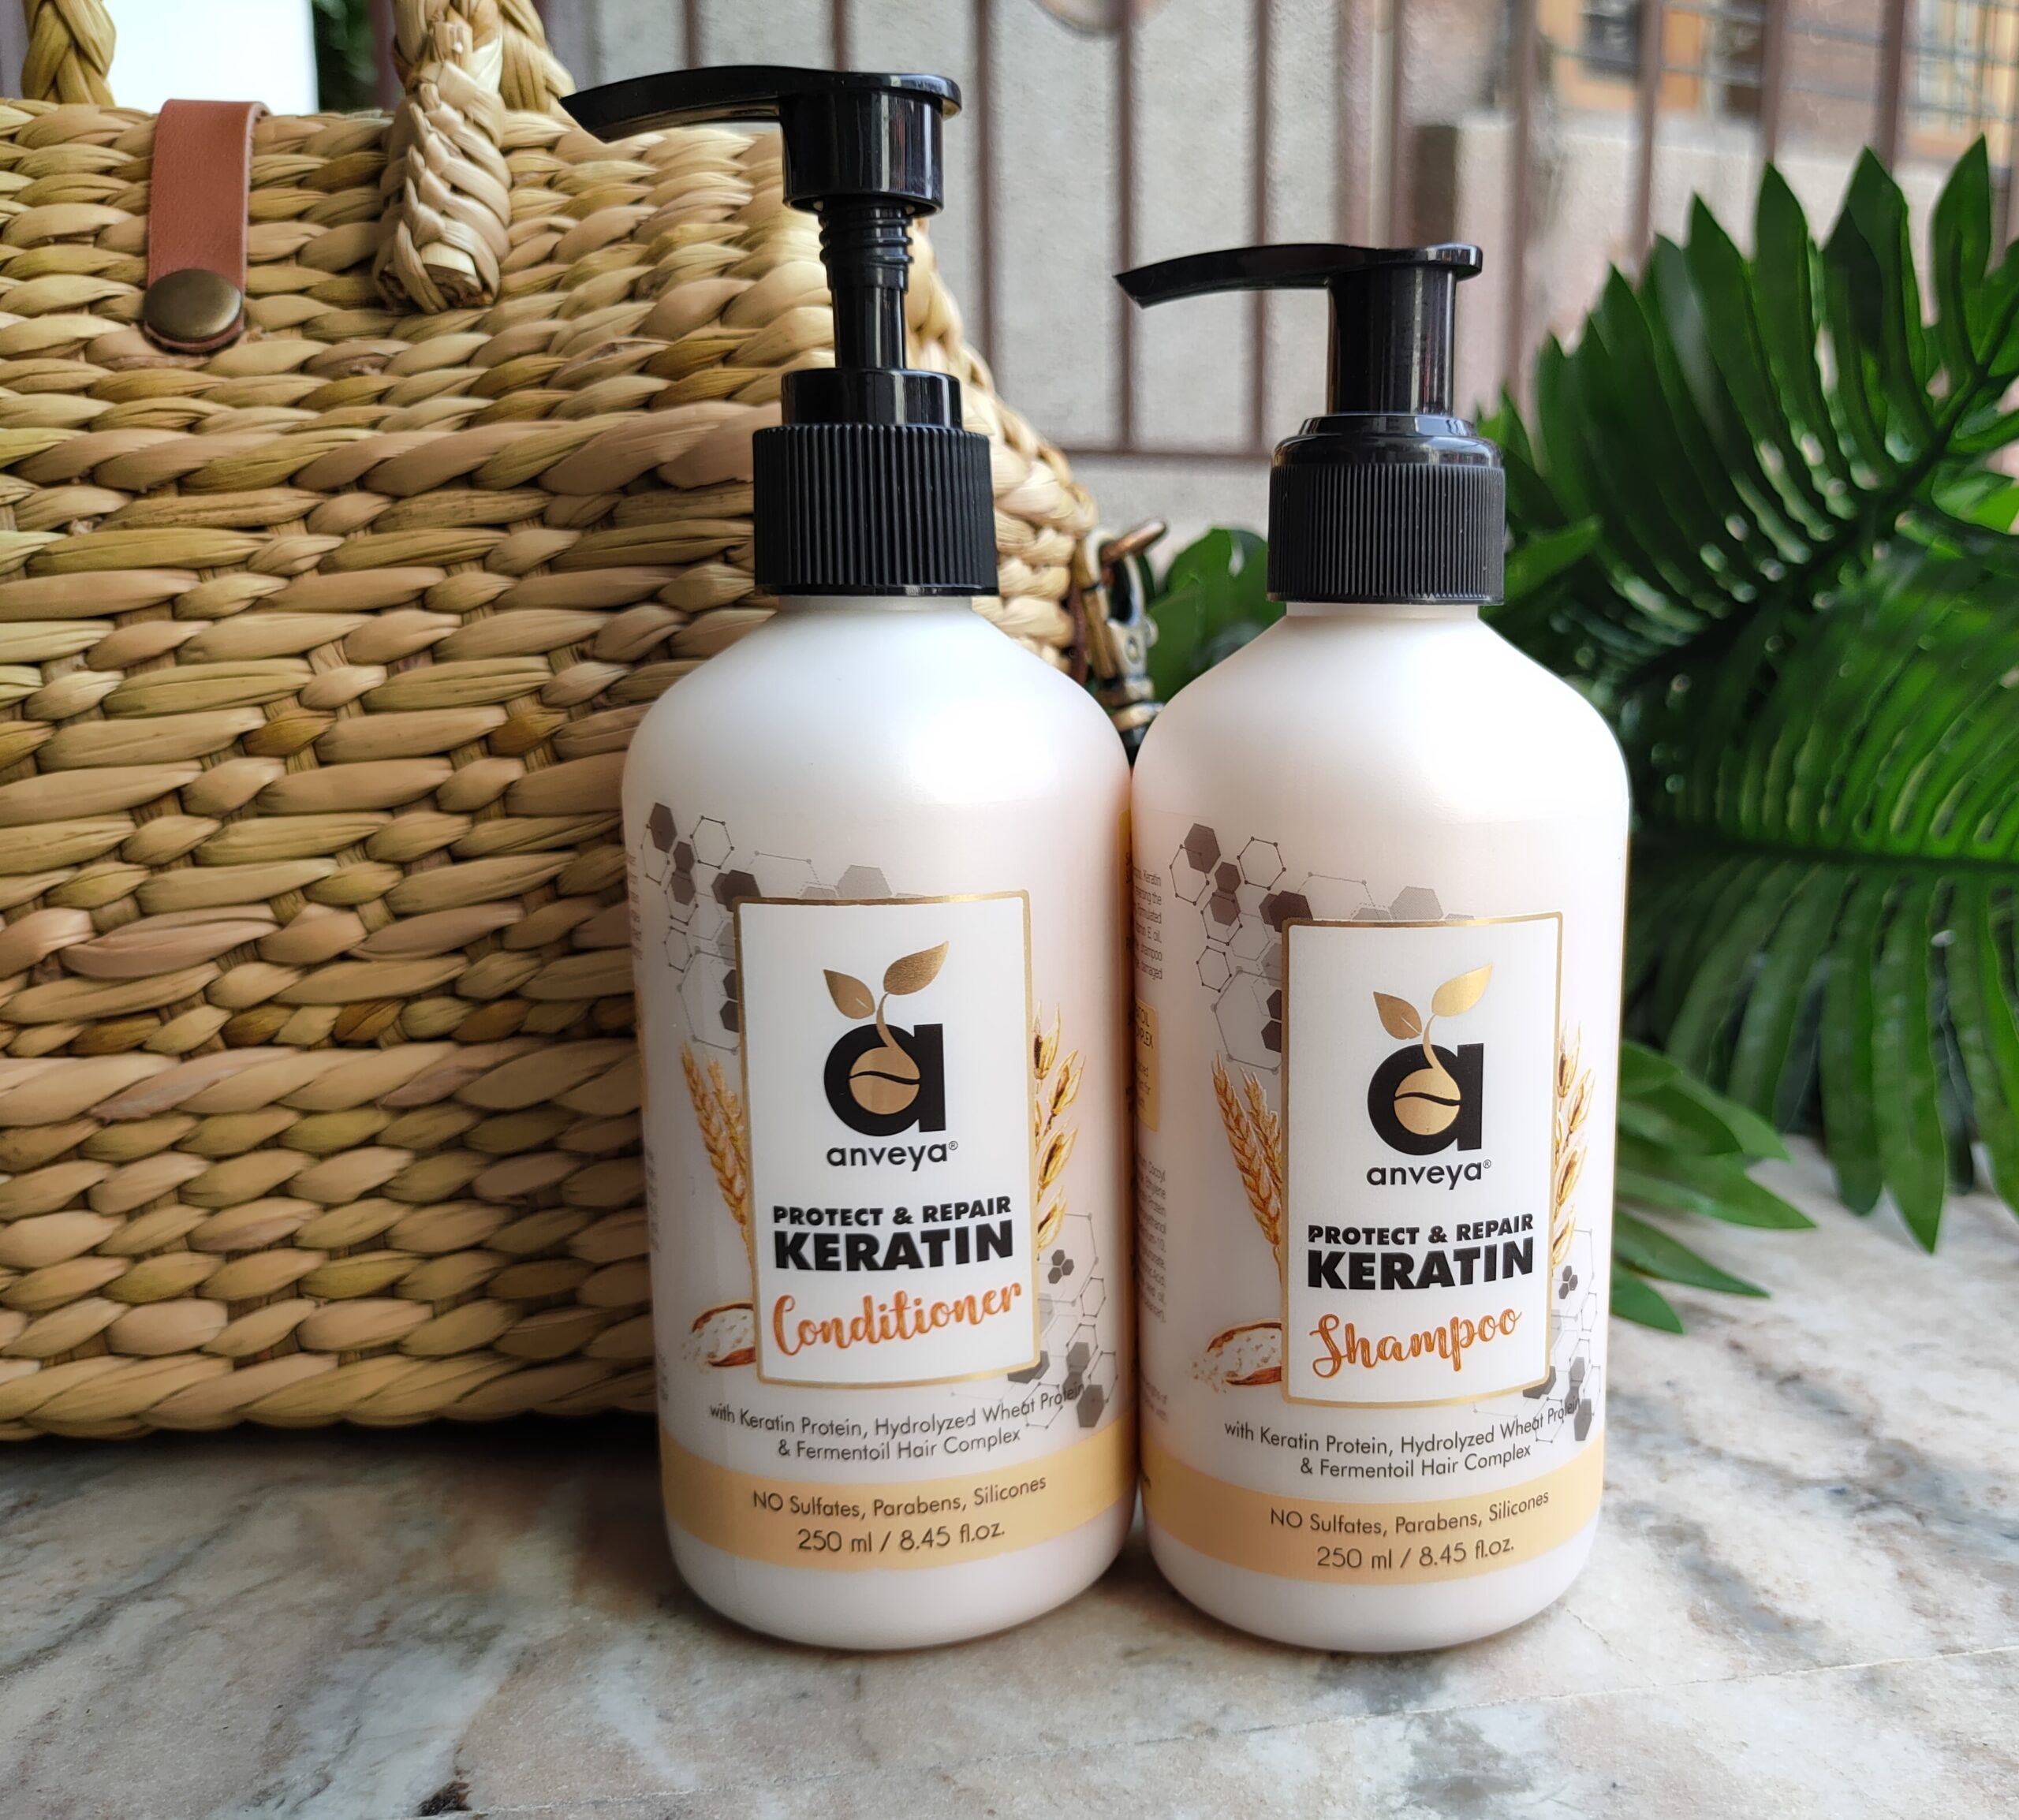 Anveya Protect & Repair Keratin Shampoo and Conditioner Review